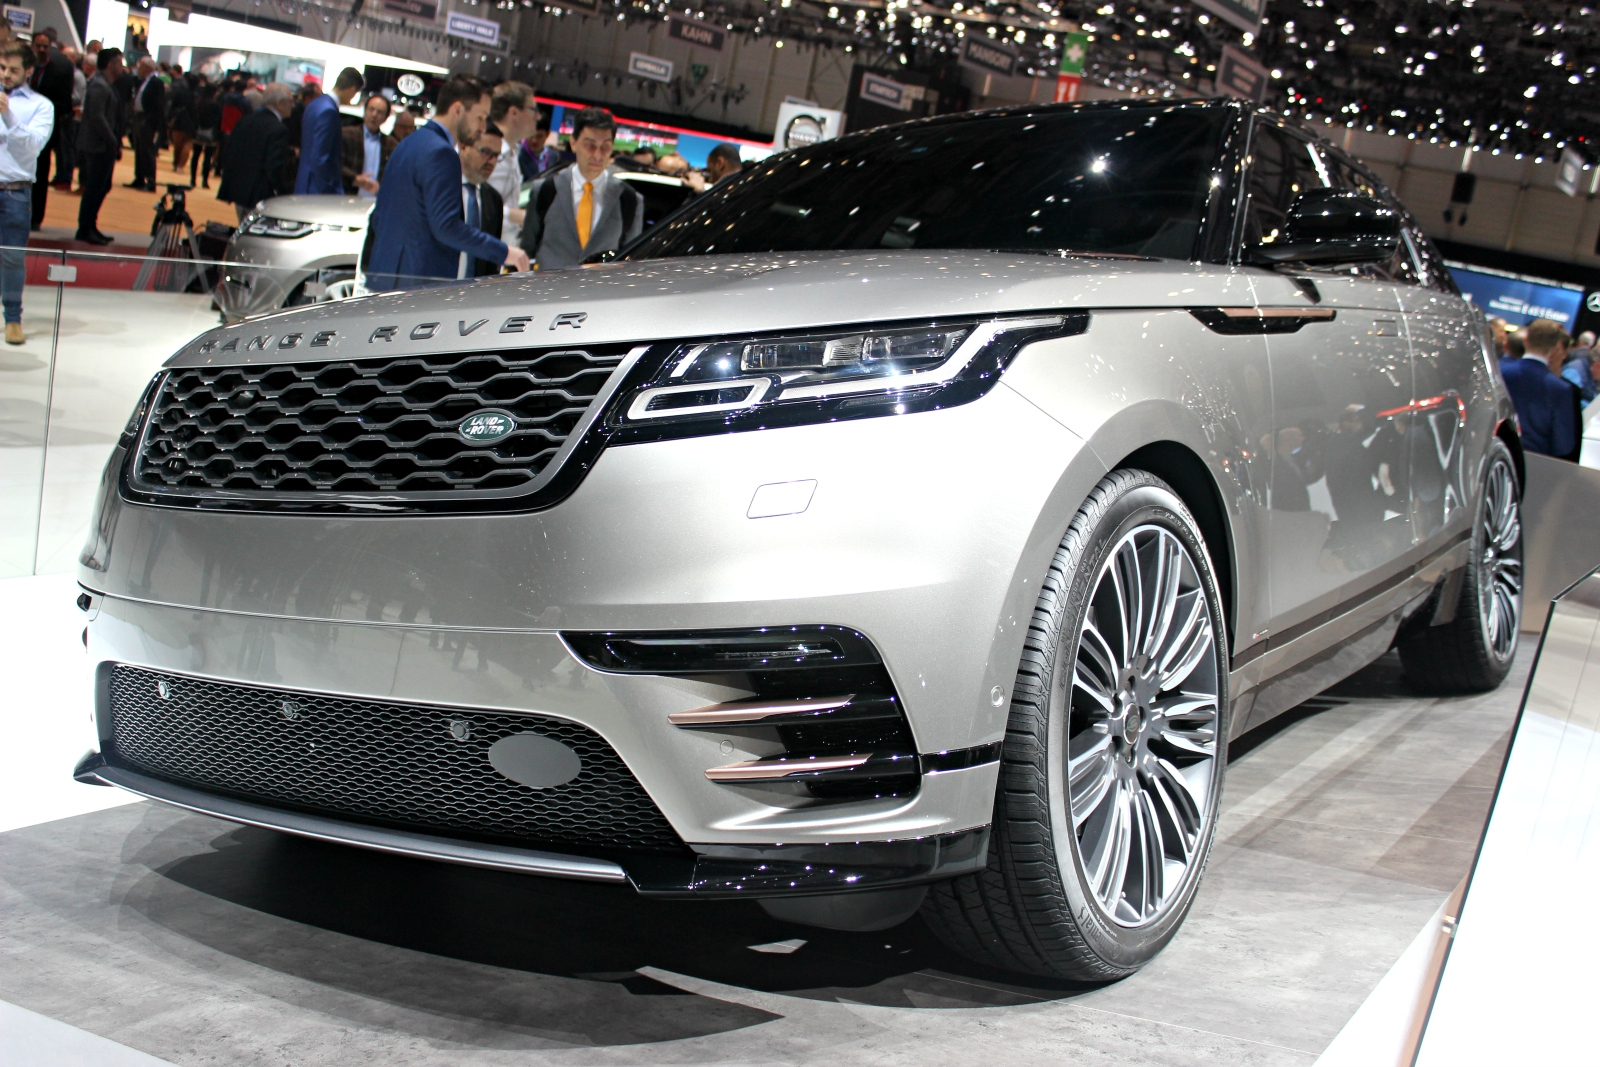 range rover velar et la mani re vid o en direct du salon de gen ve 2017. Black Bedroom Furniture Sets. Home Design Ideas